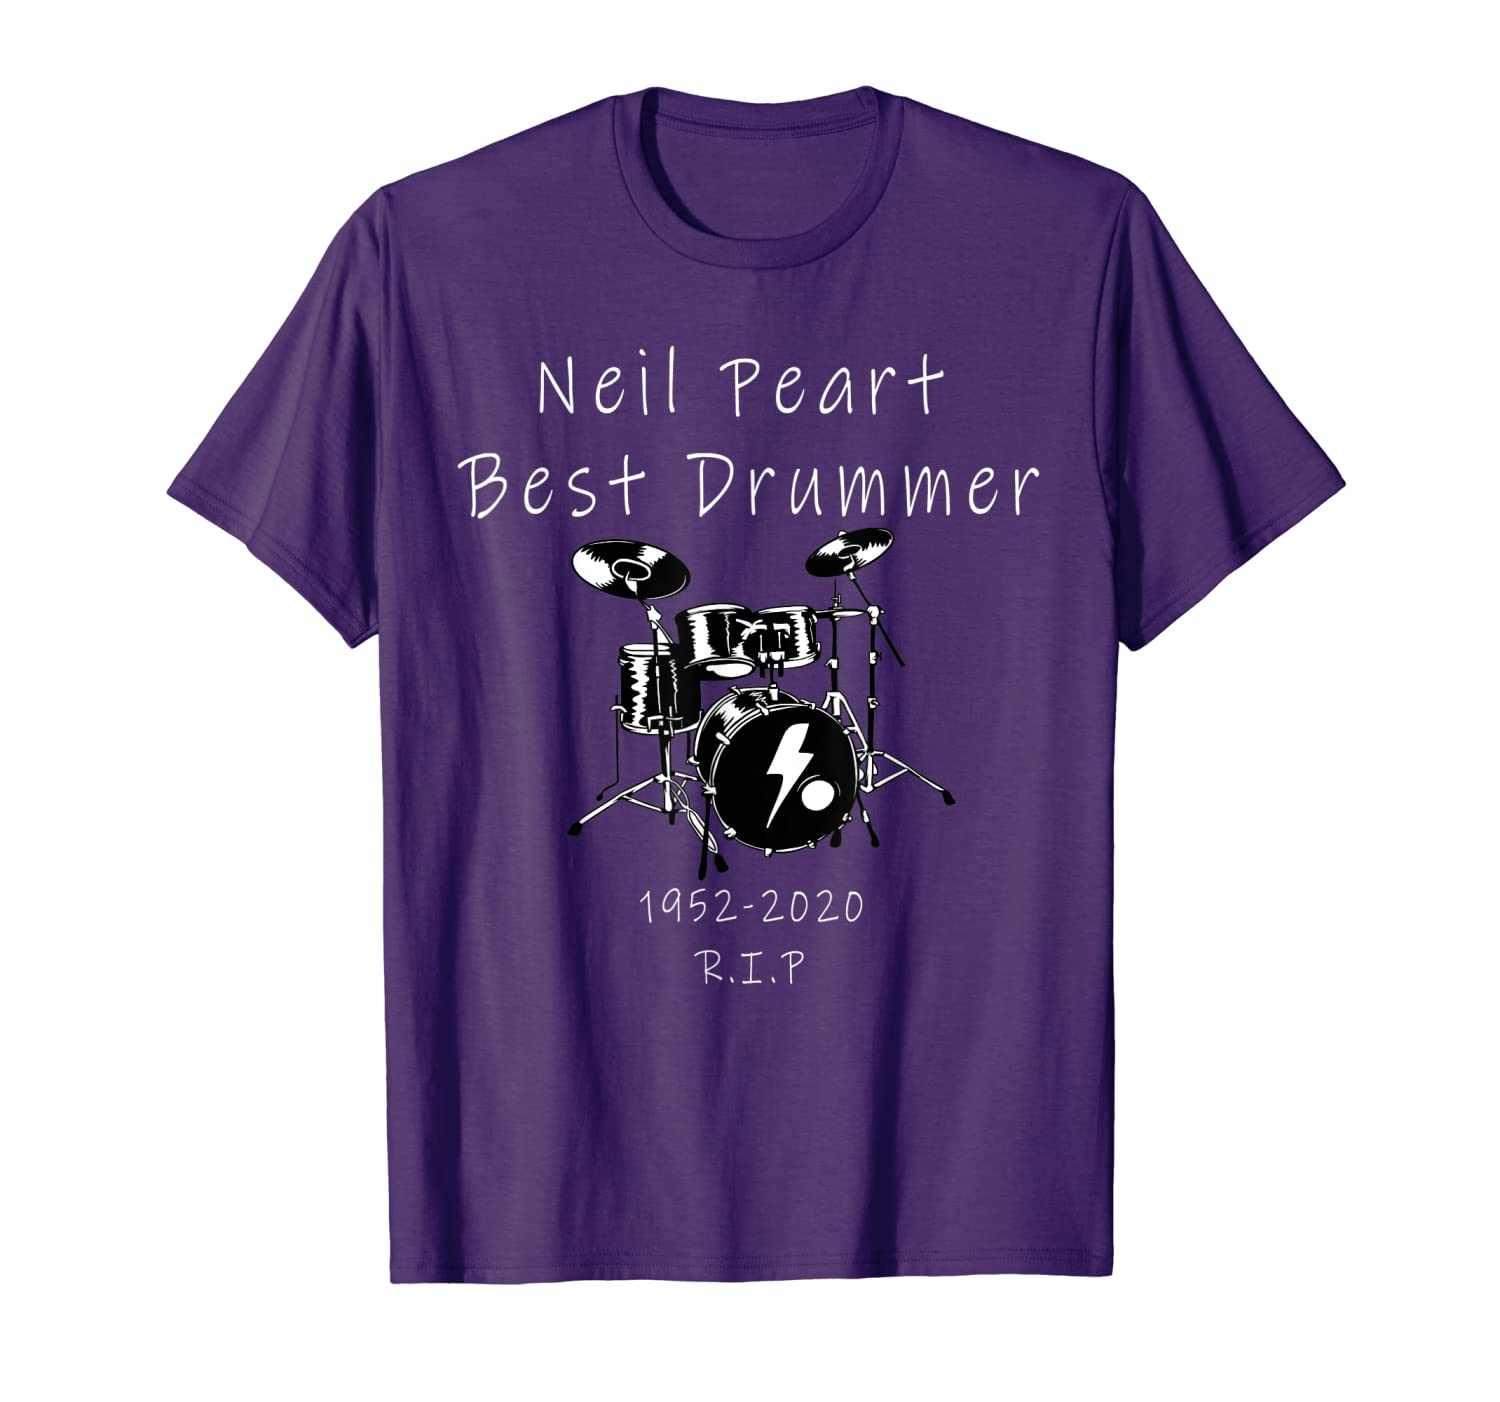 Neil Memory-Peart In Loving Drummer 2020 T-Shirt